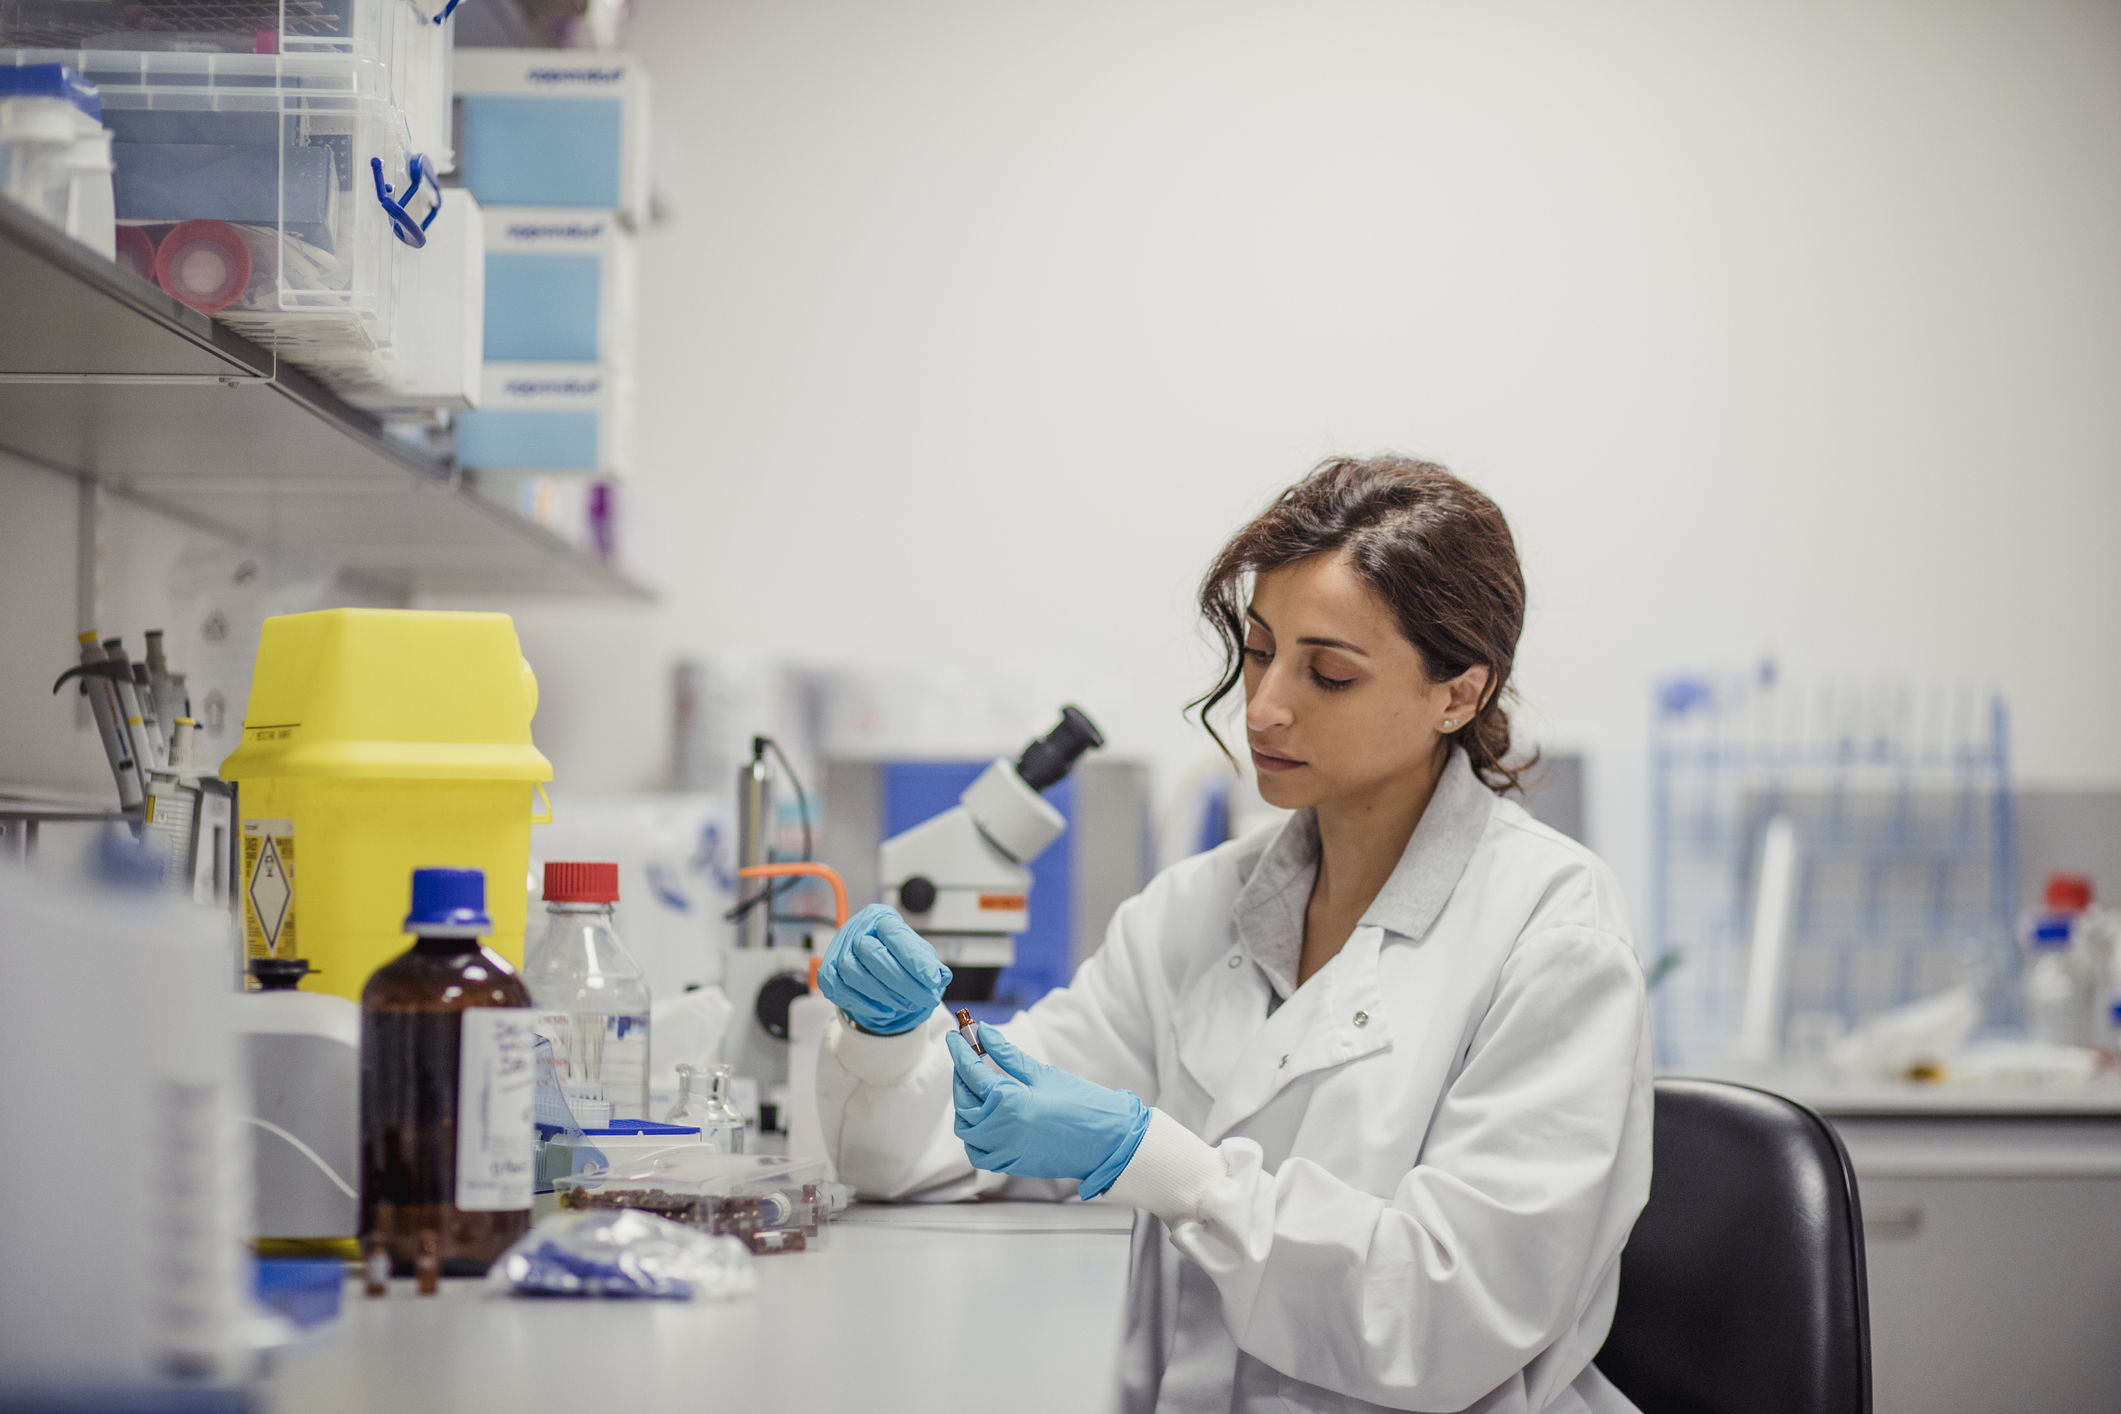 Young South Asian woman doing research in a lab